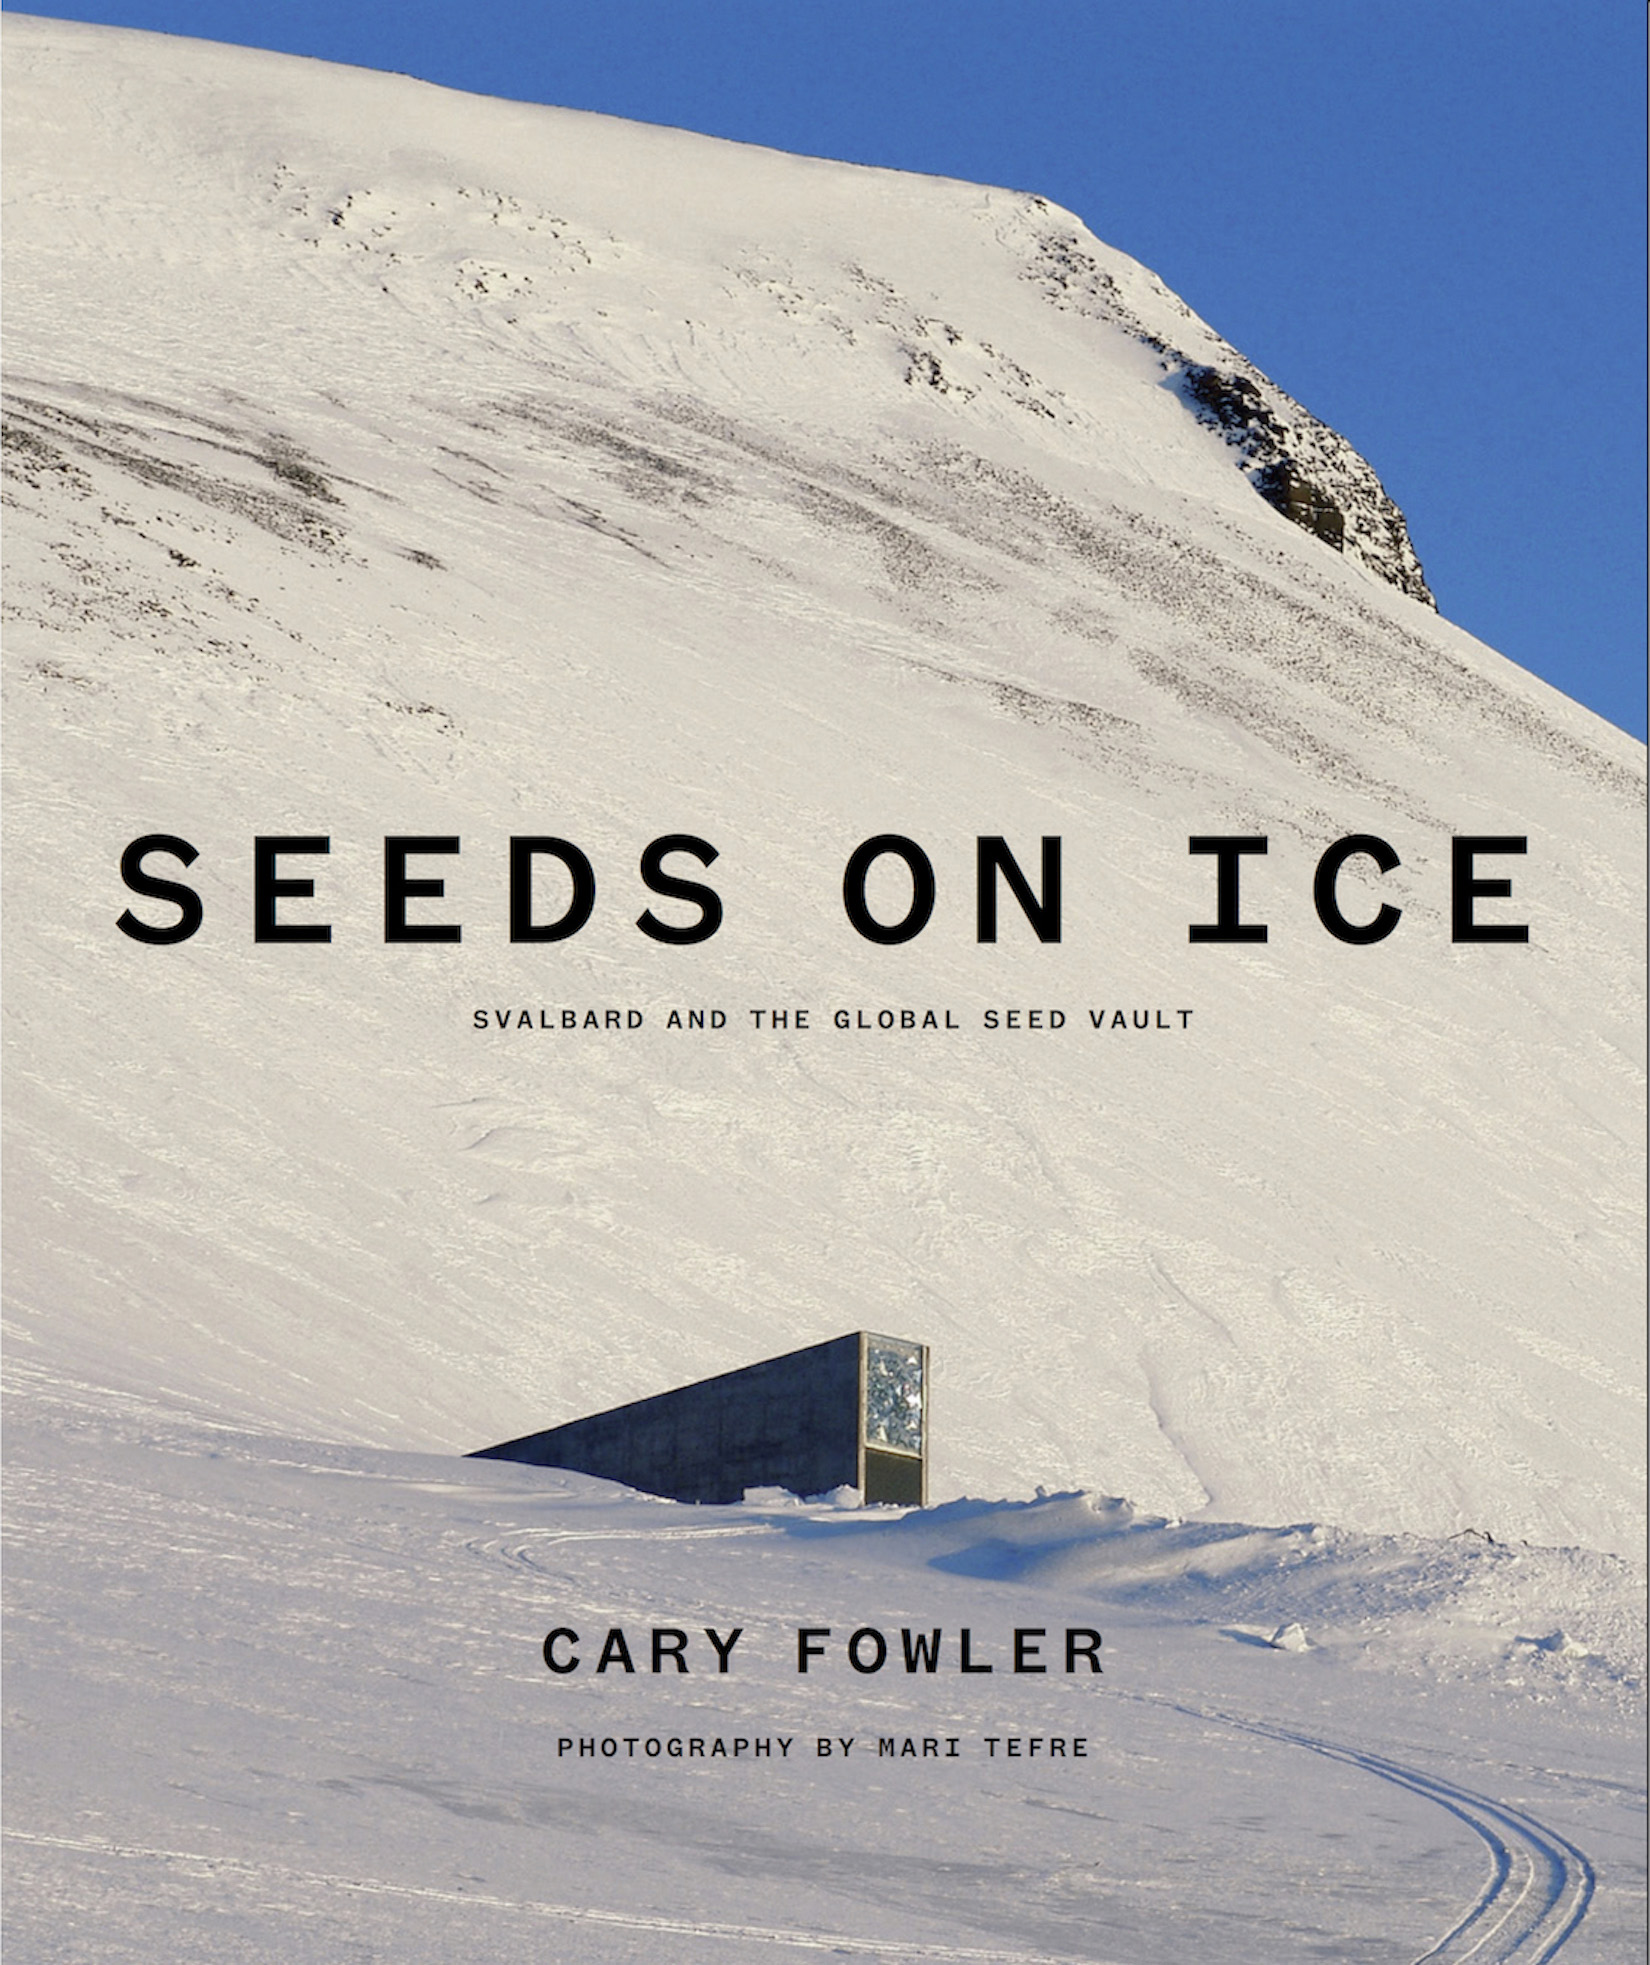 Cary Fowler has just written a book on the Svalbard Global Seed Vault that lifts the veil on the place, which is not open to the public even though it quickly became the second most recognized structure in Norway. (Prospecta Press)